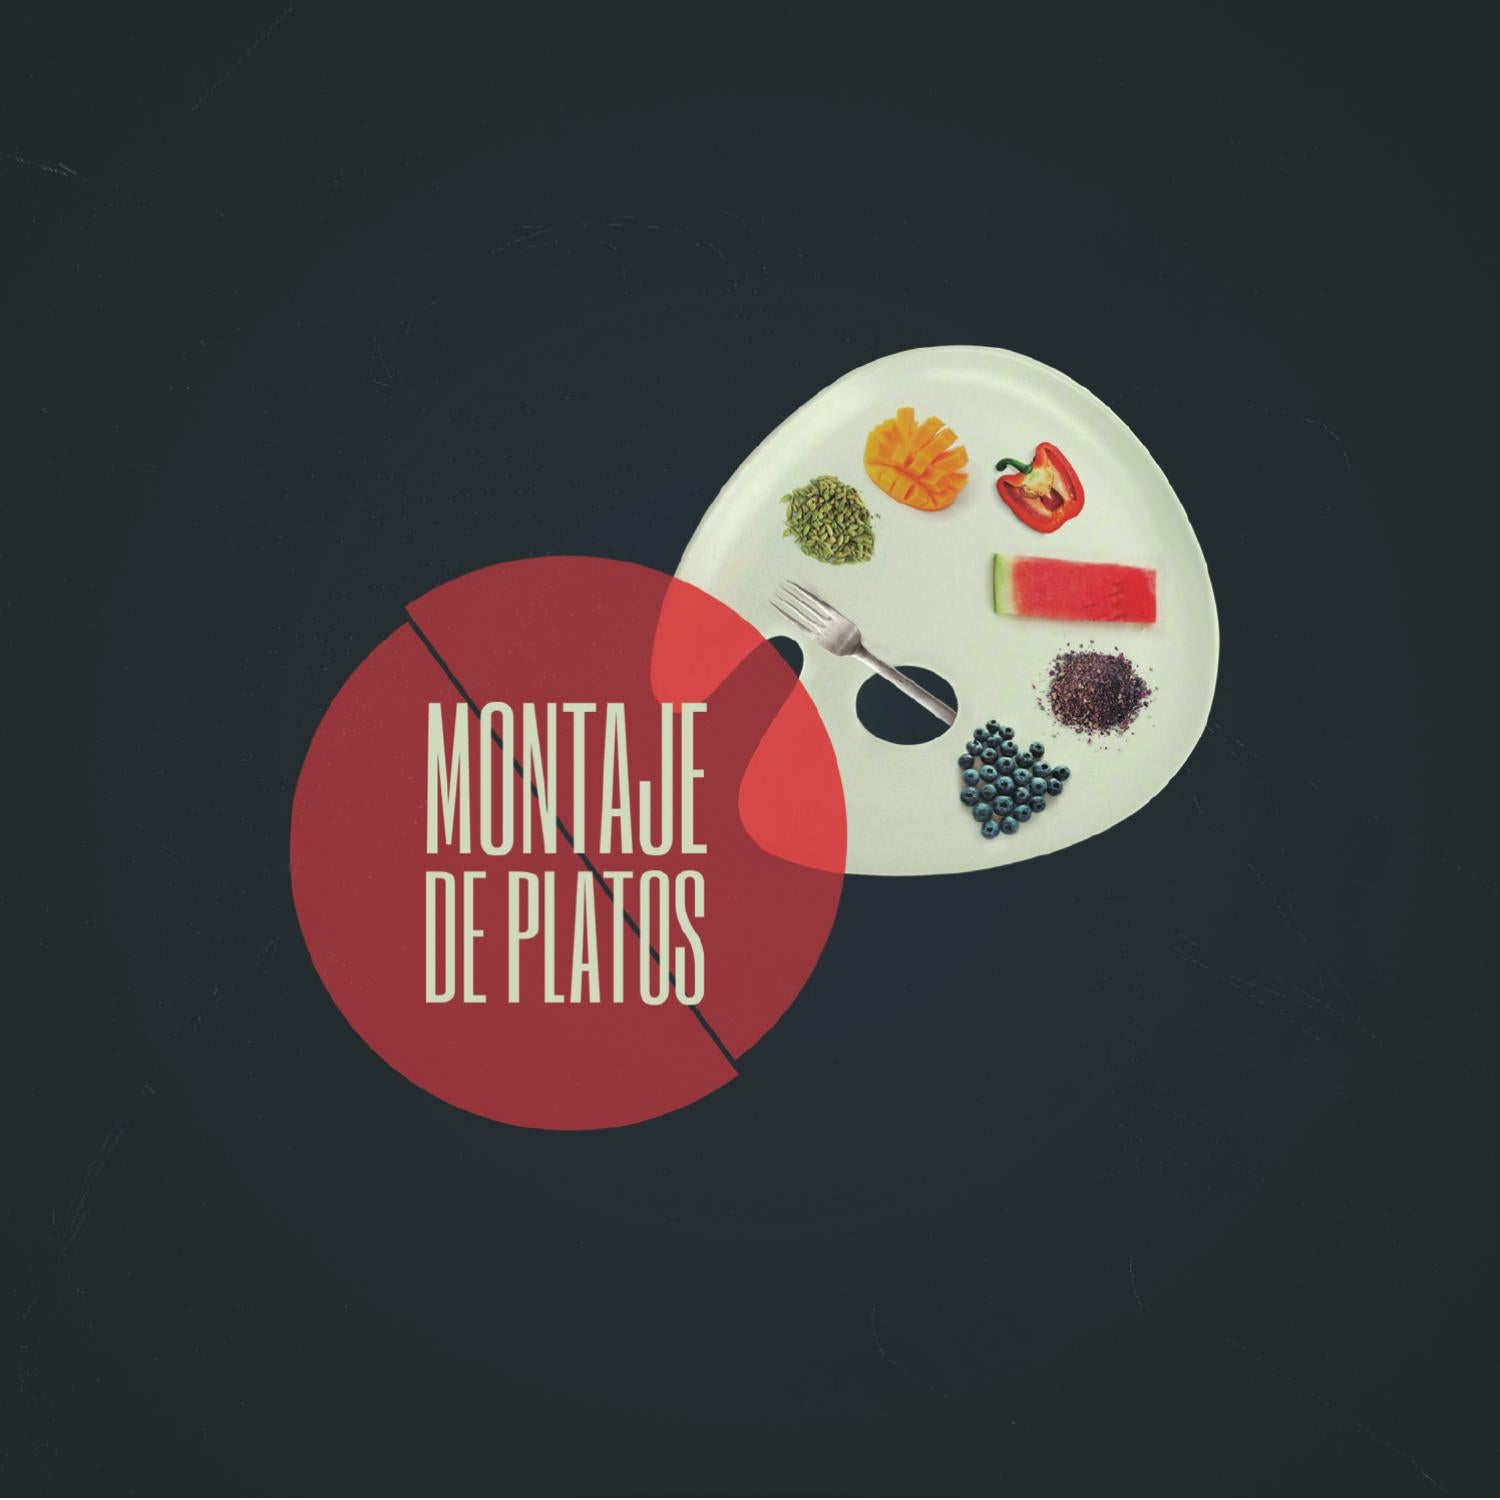 Manual de montaje de platos by karen galindo acu a issuu for Libro de tecnicas culinarias